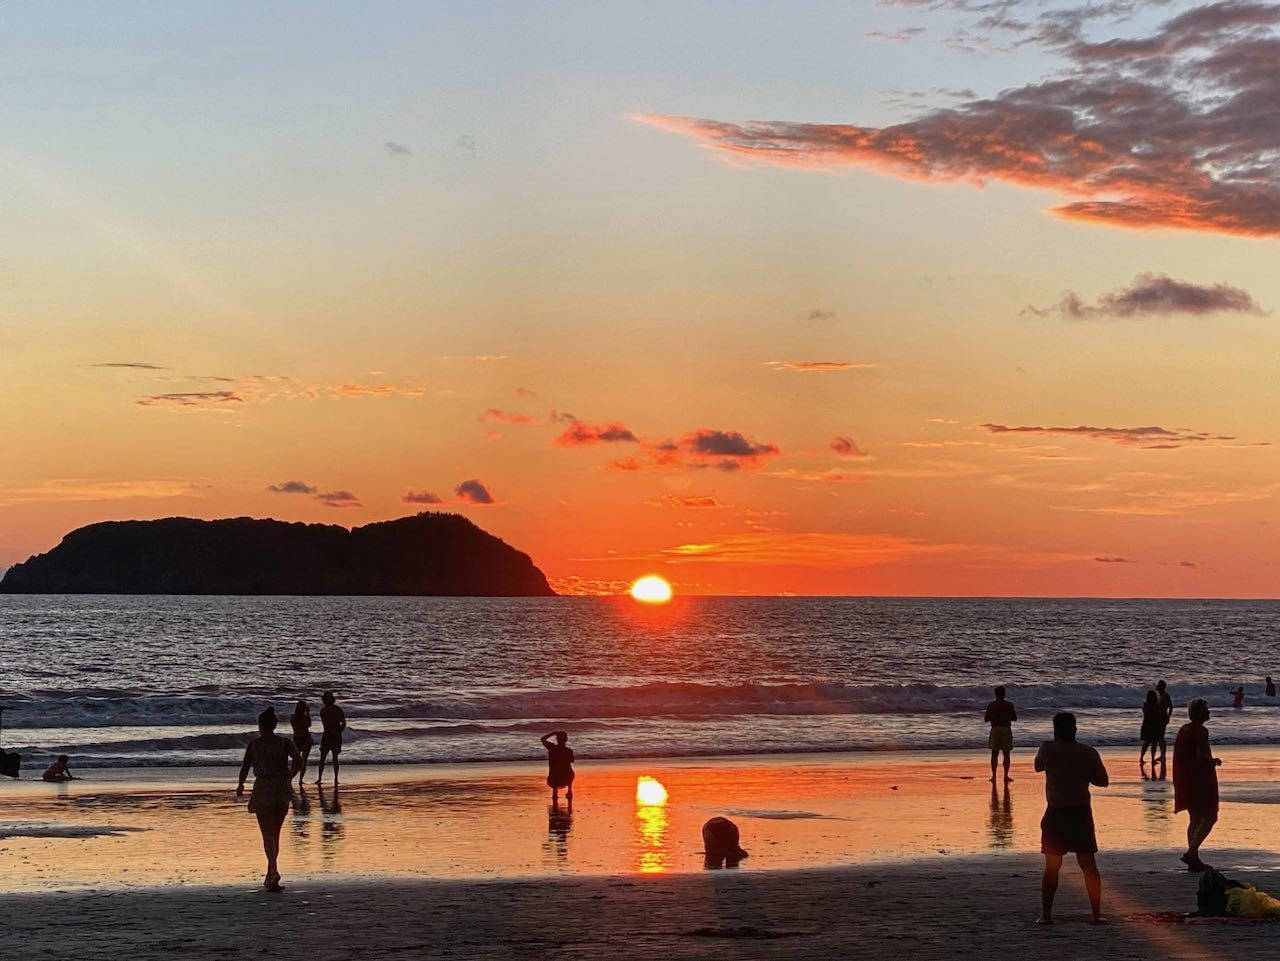 sunset in quepos over the beach in Costa Rica